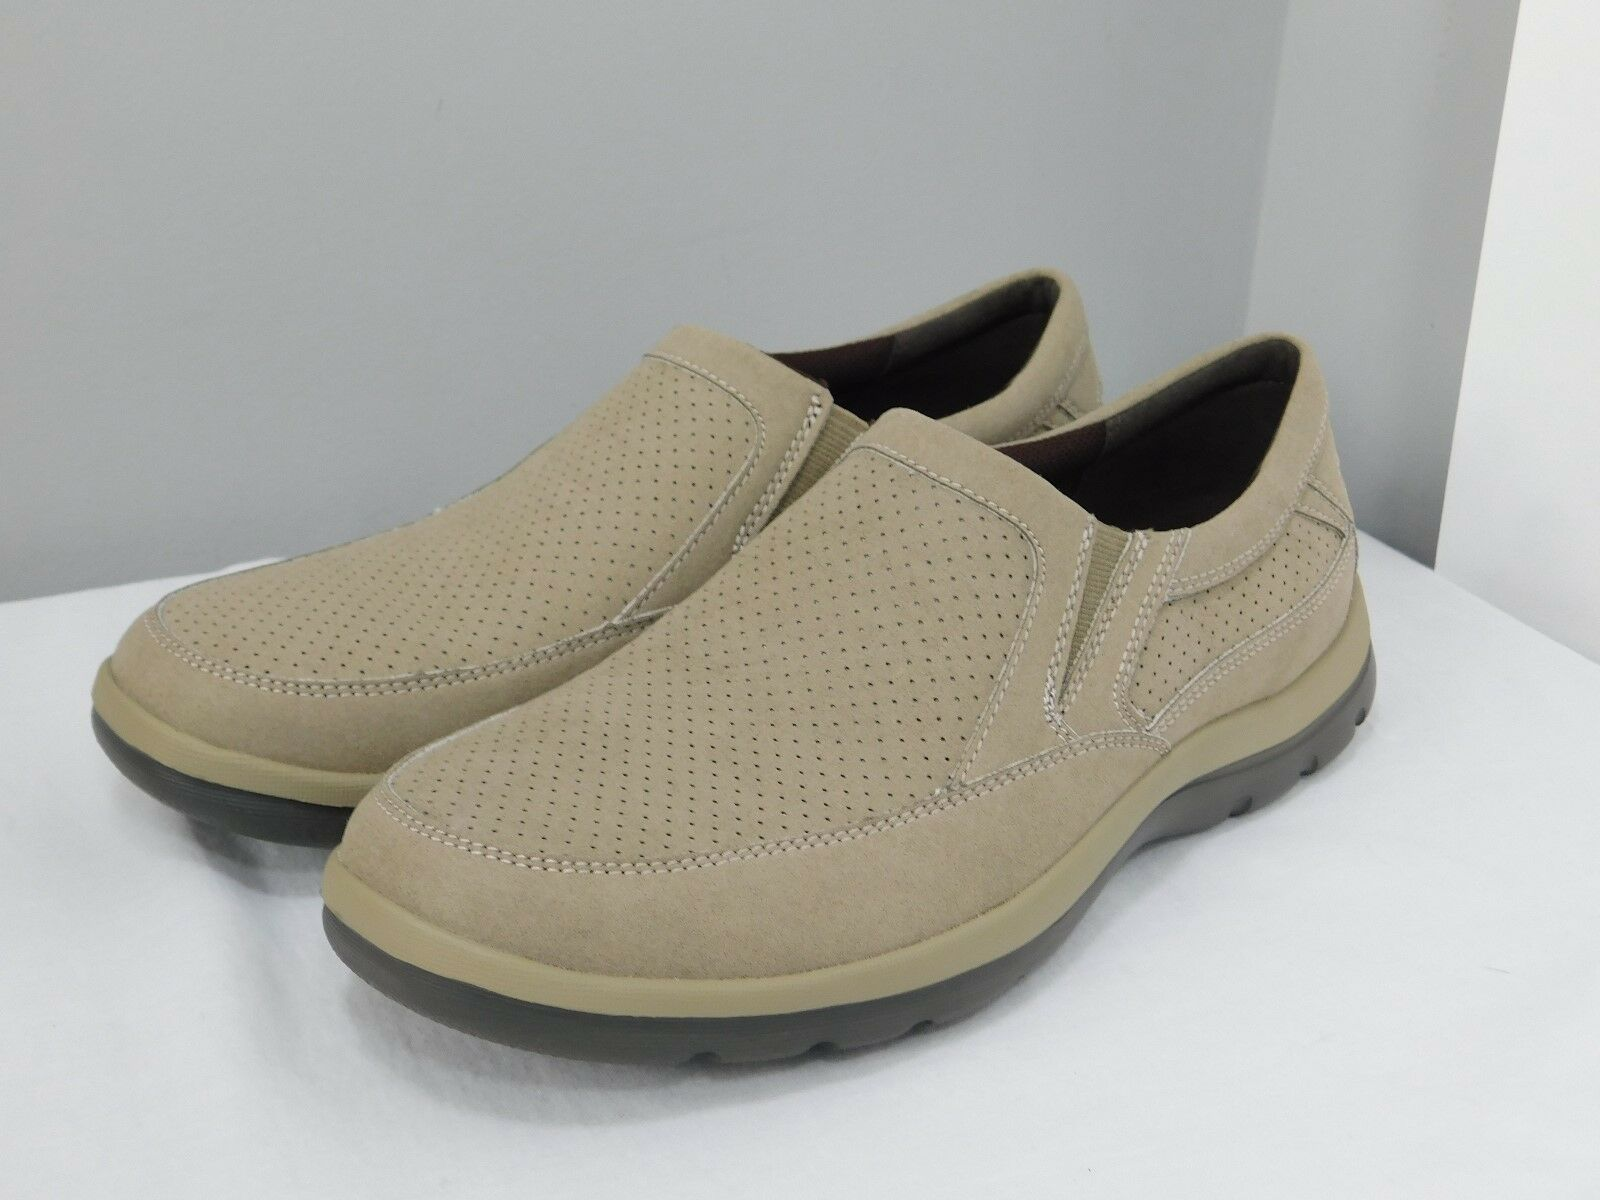 Men's Rockport XCS Tan Suede Casual Loafers Slip-on Size 8.5M